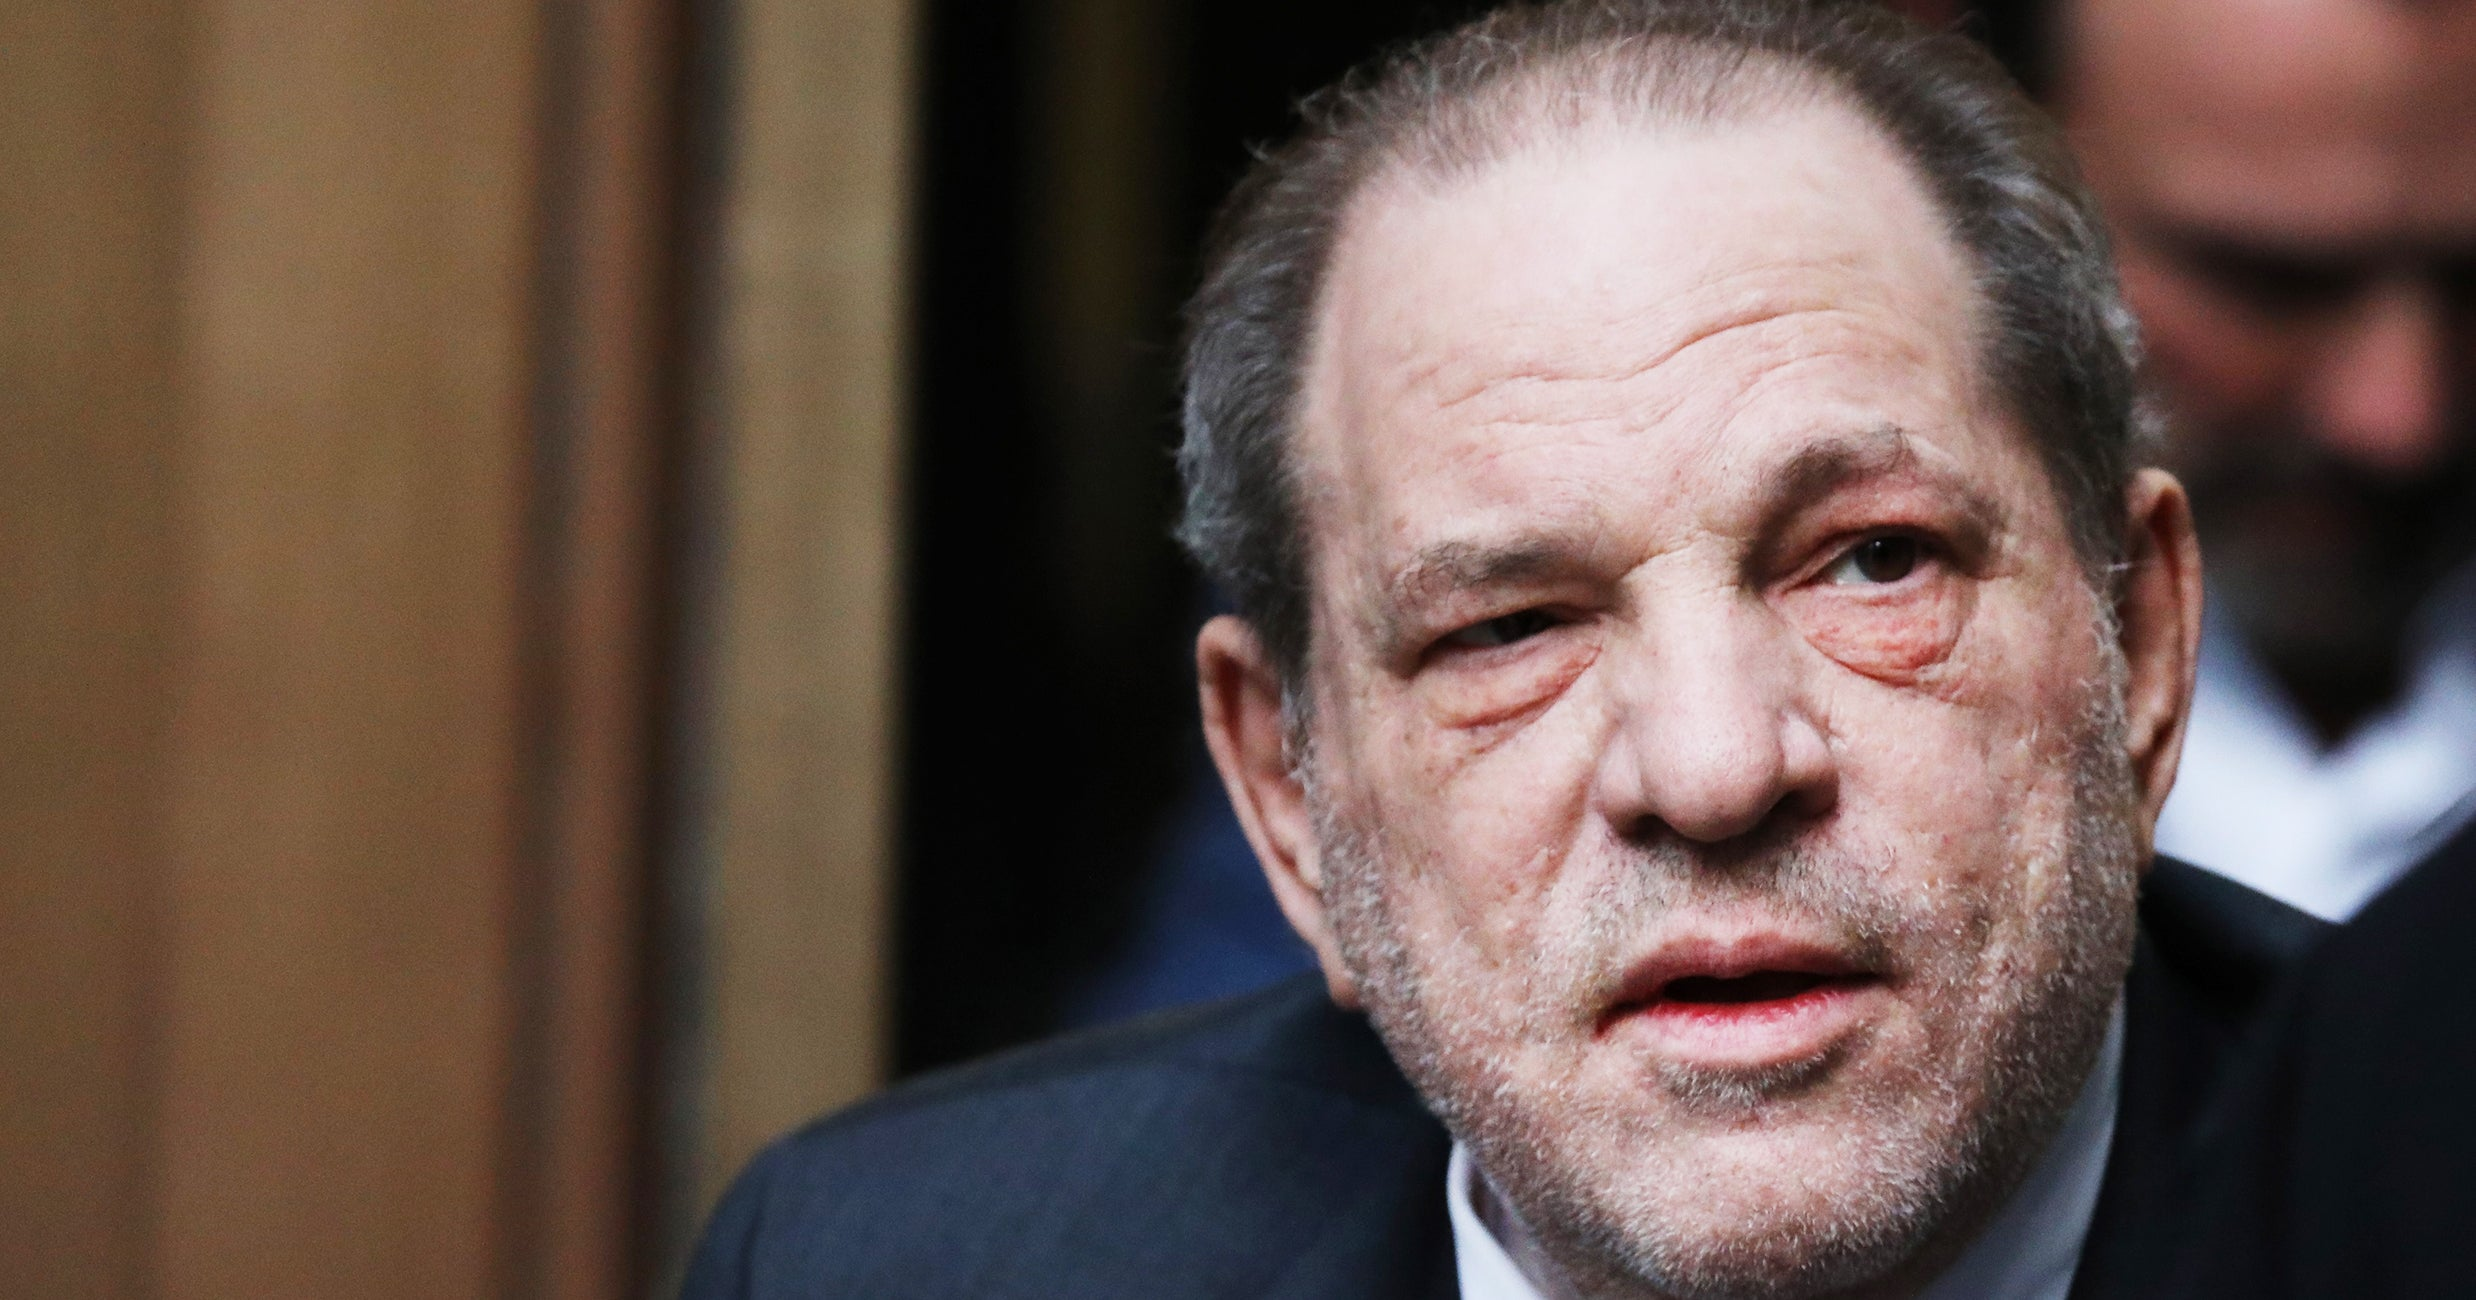 Here's A Breakdown Of All The Charges Against Harvey Weinstein What He's Going To Jail For